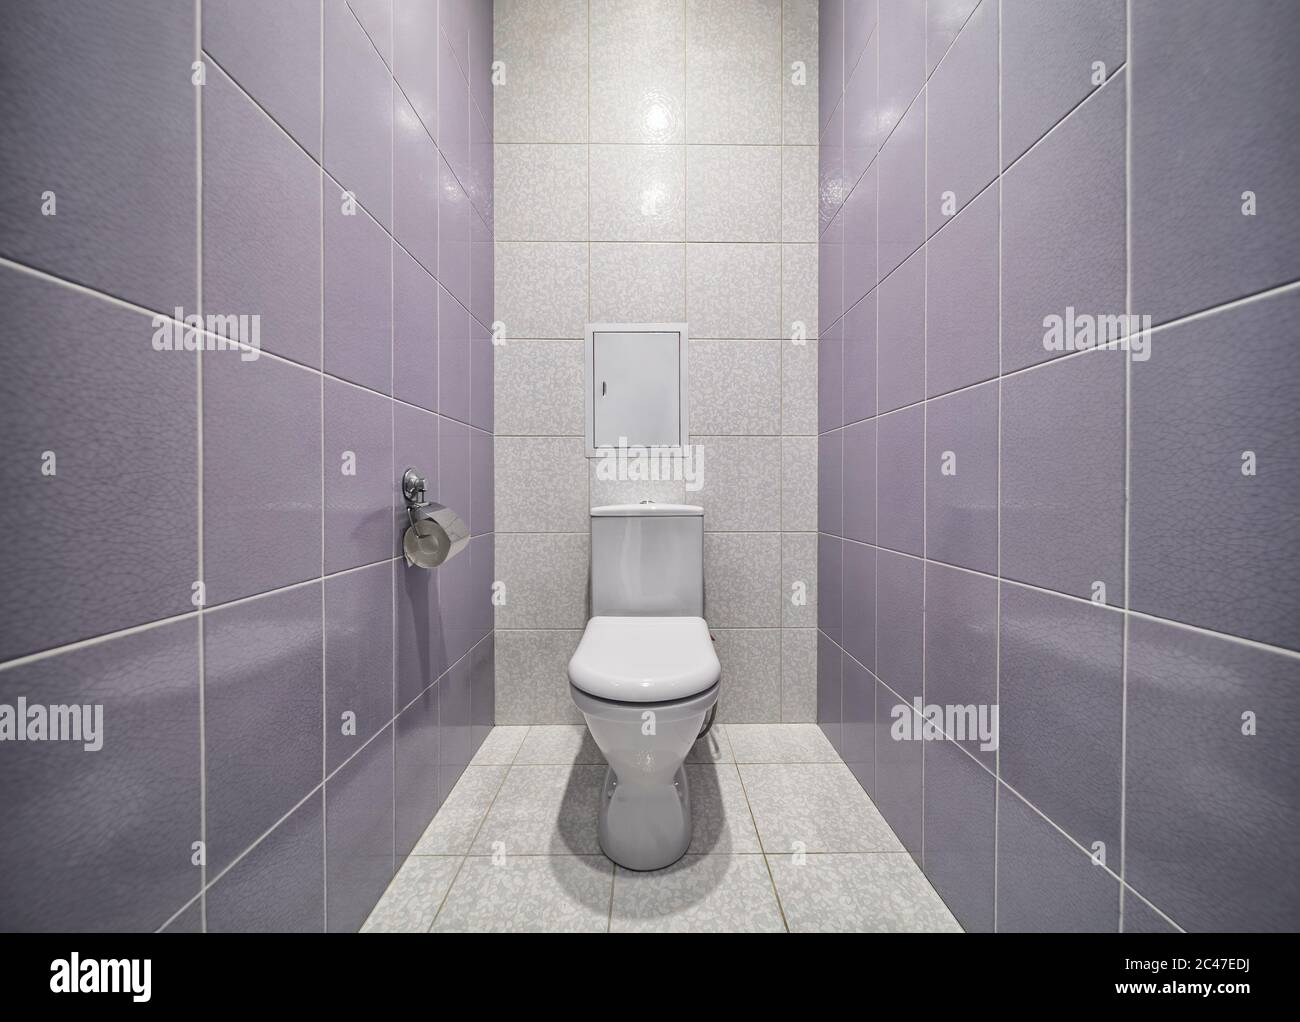 White mounted toilet bowl in modern bathroom with tiled walls and paper holder Stock Photo